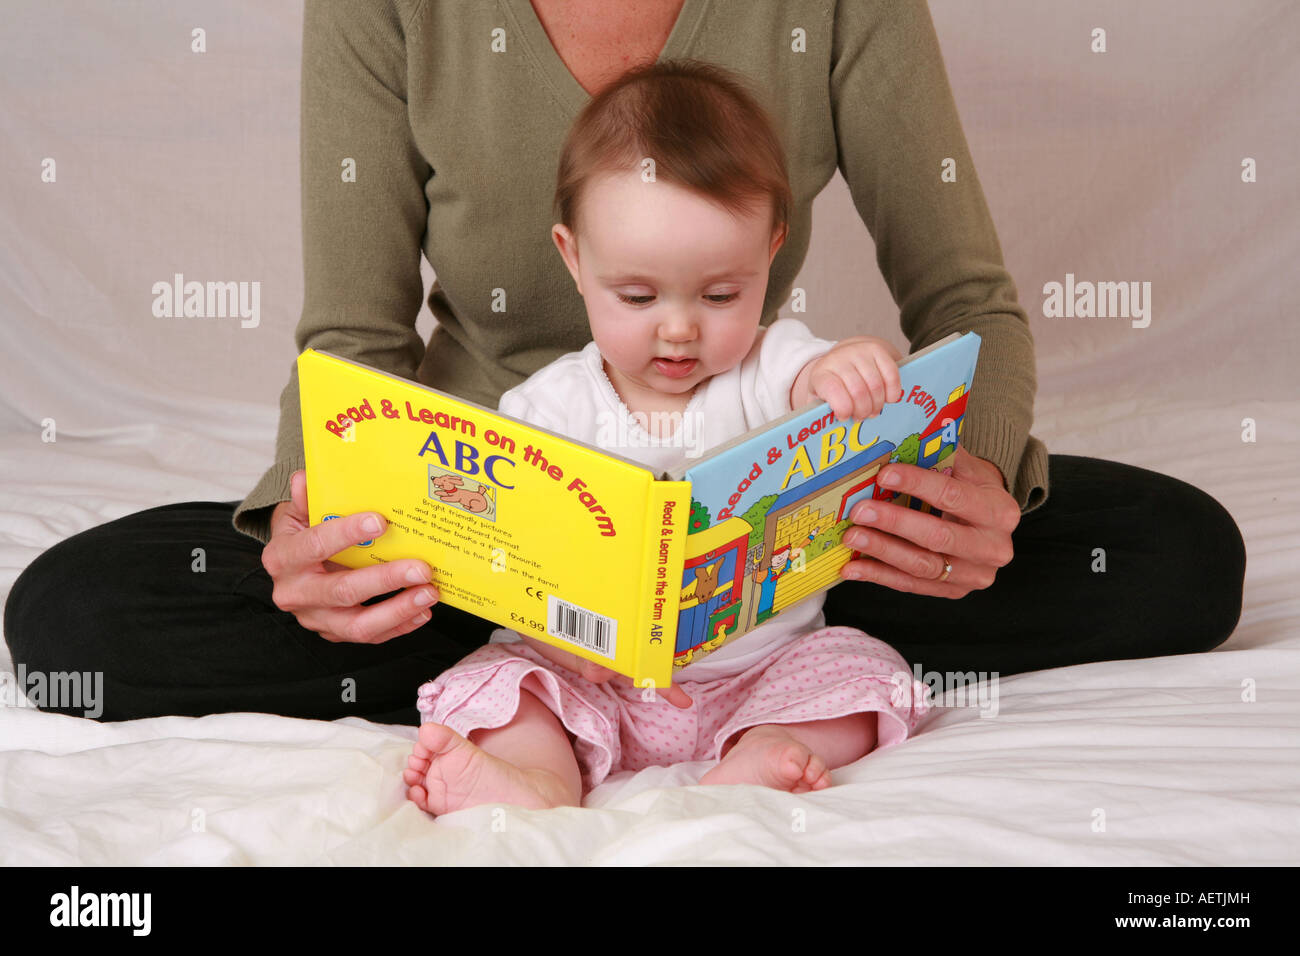 Cute Young Newborn Baby Infant Child Reading First Book With